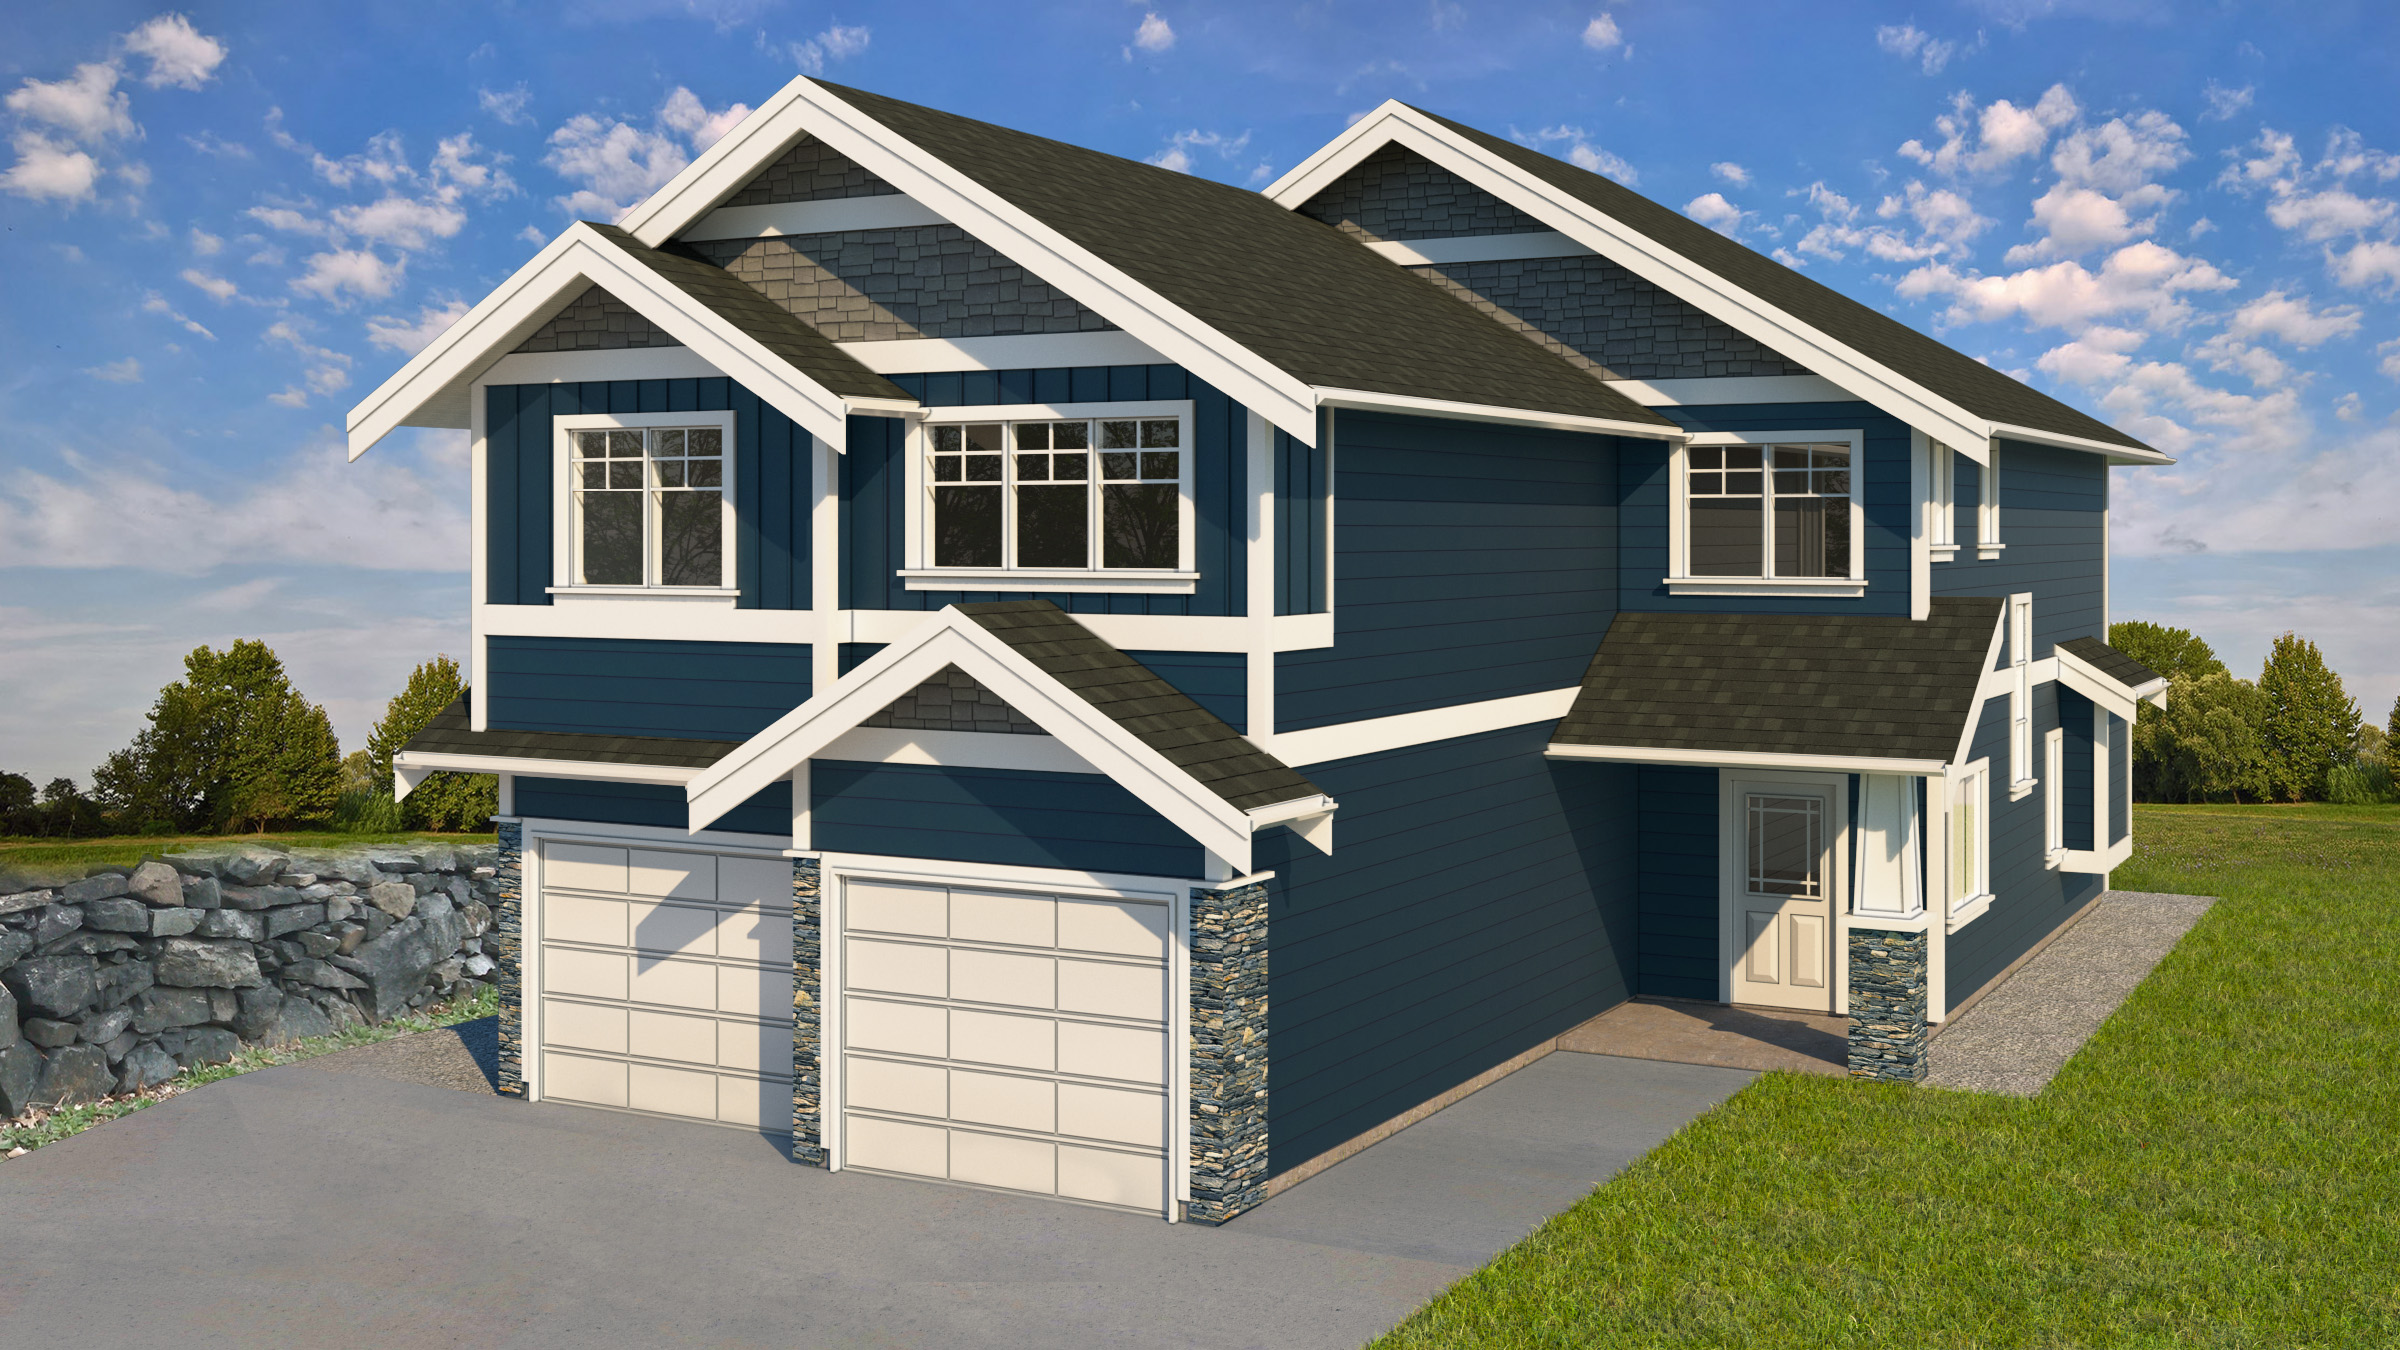 West Ridge Trails New Home For Sale - 4 bedrooms 3 bathrooms 2400 sqft - Carriage House Suite Above Garage